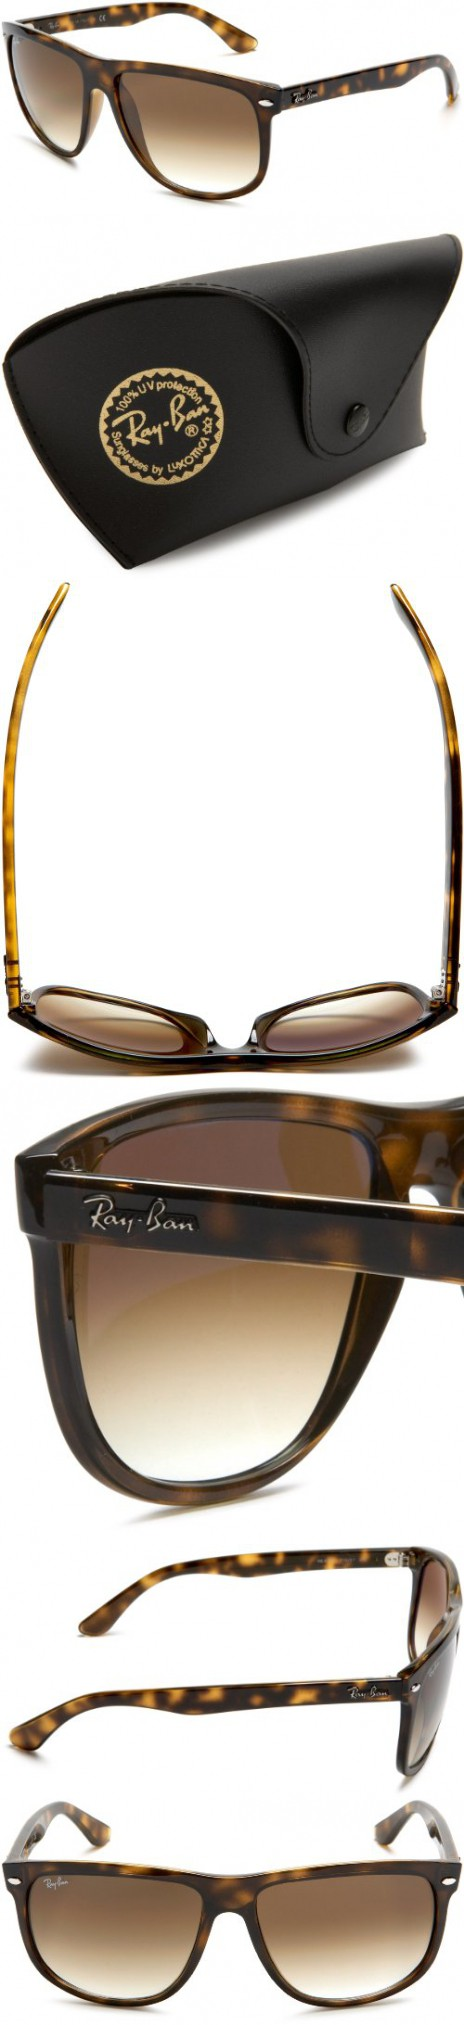 4db0dd19c90 Ray-Ban RB4147 - LIGHT HAVANA Frame CRYSTAL BROWN GRADIENT Lenses 60mm  Non-Polarized